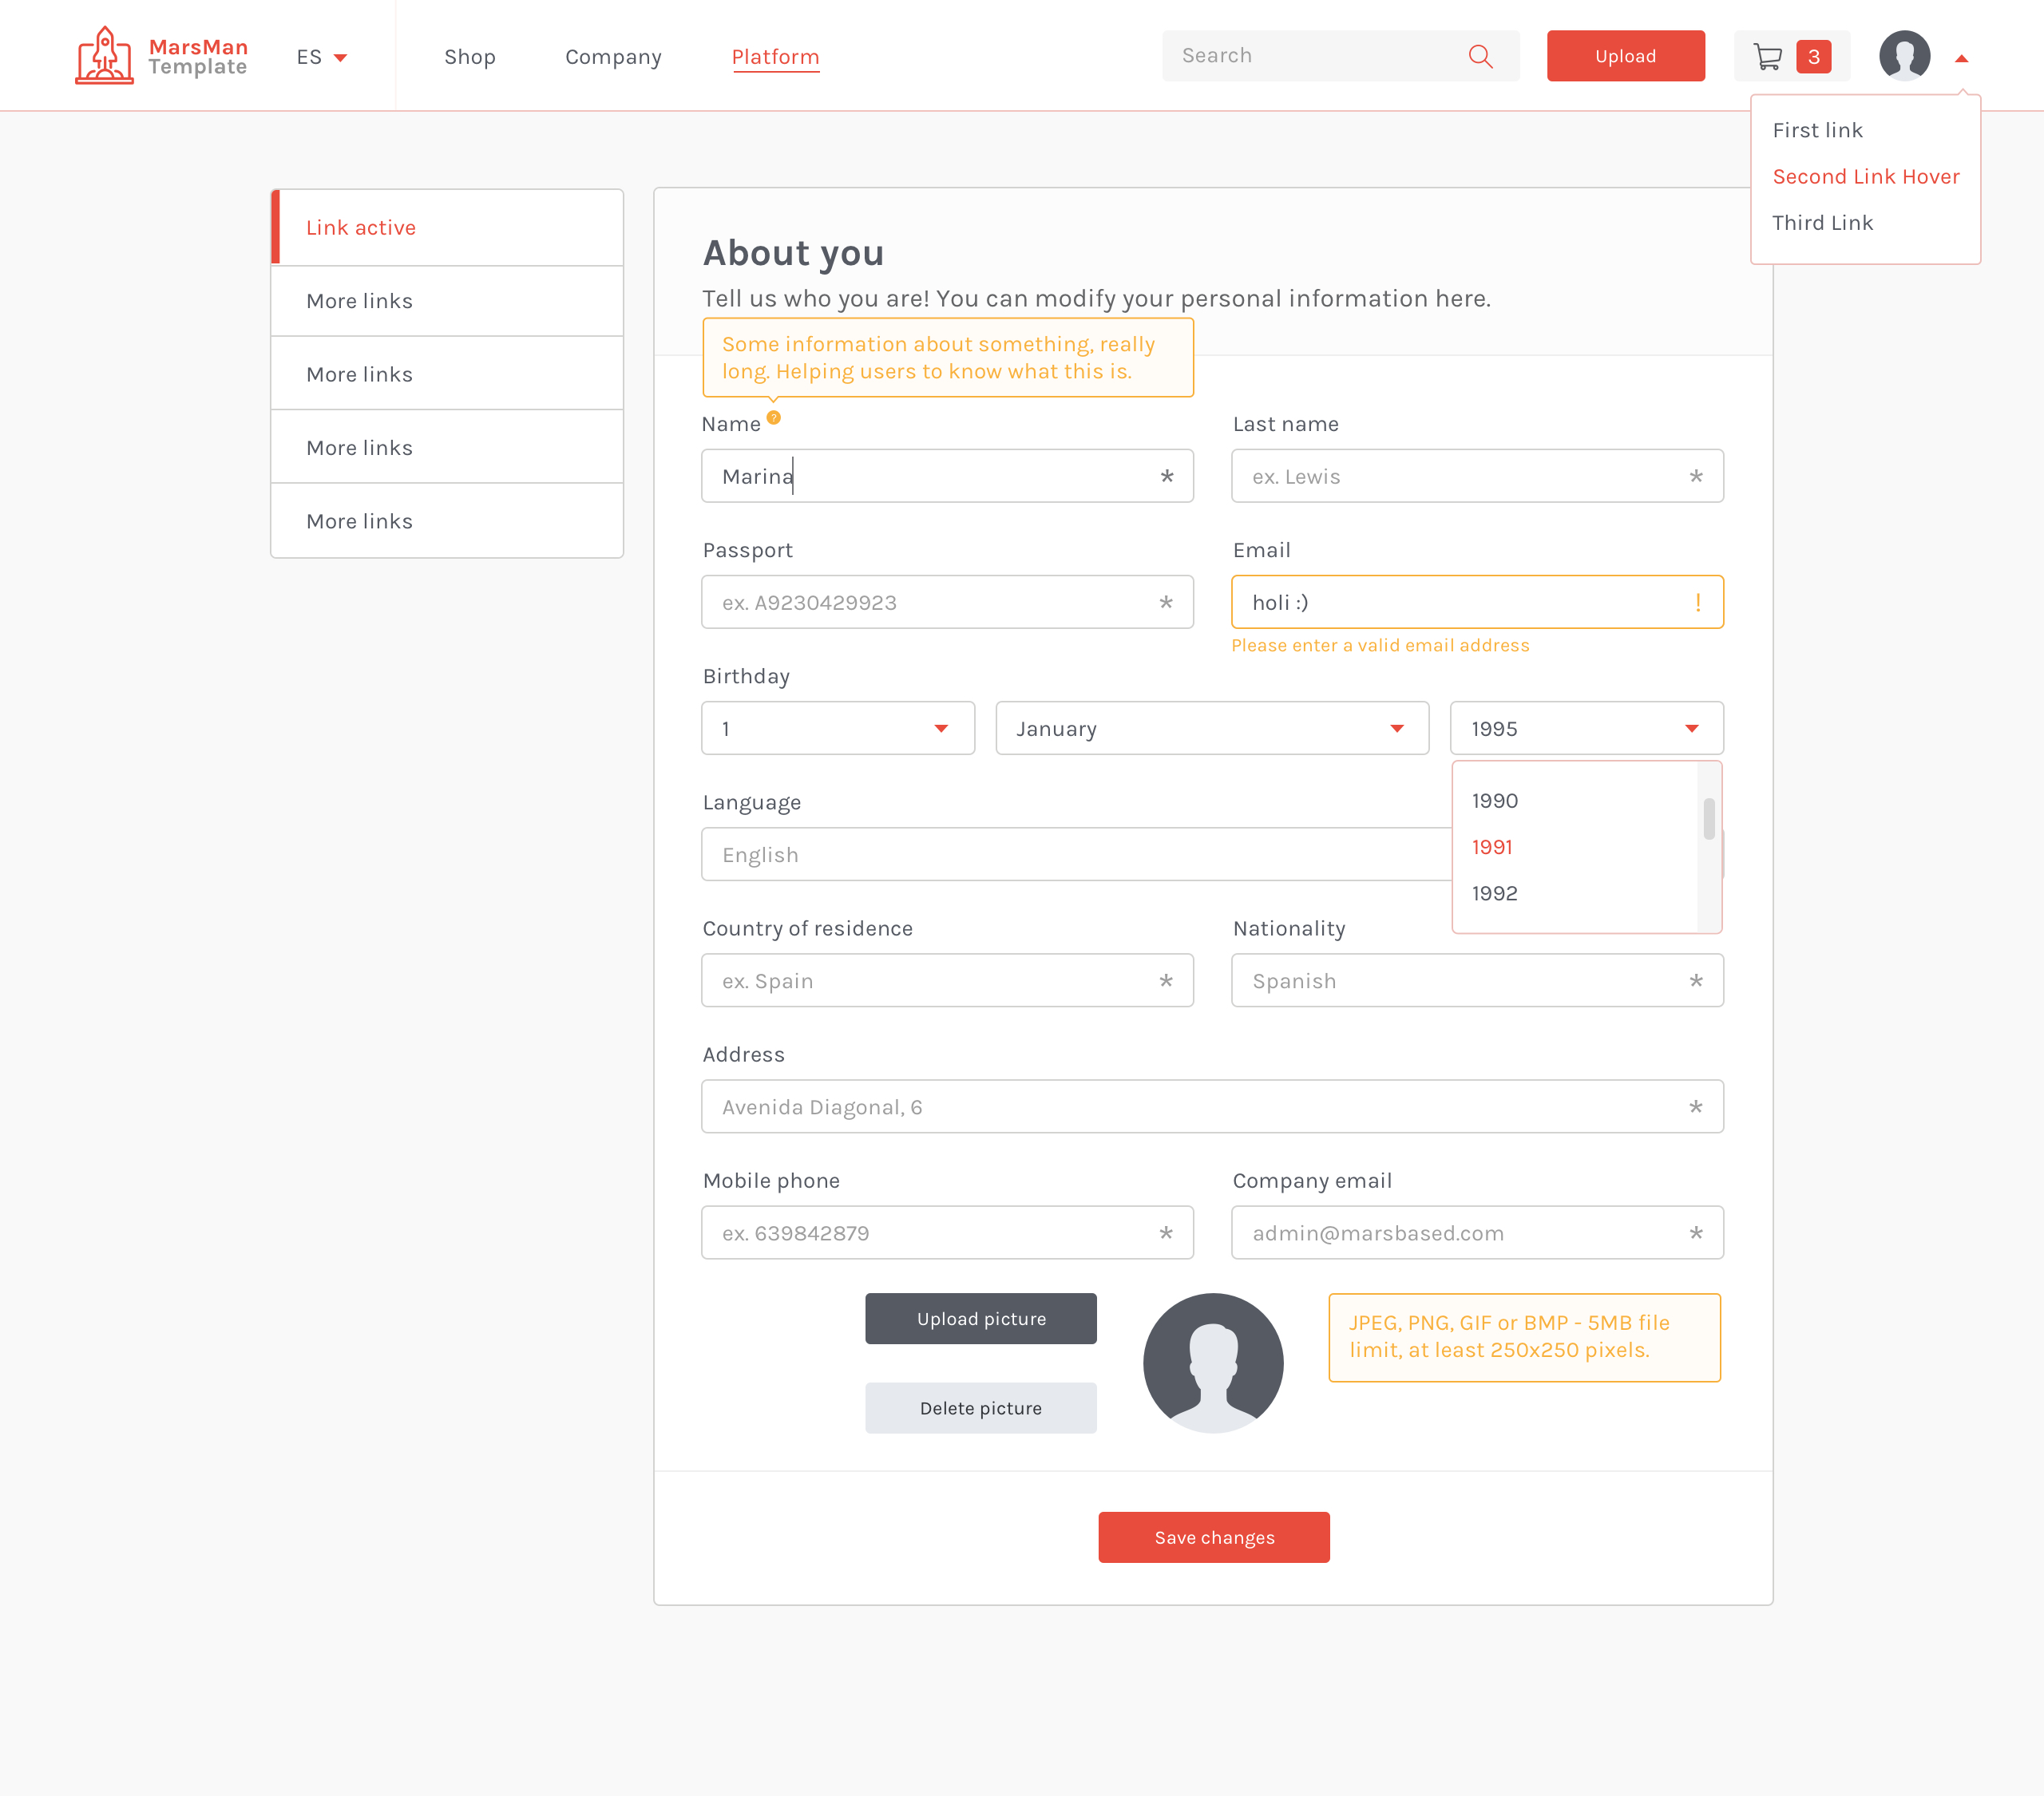 Edit Profile page in the MarsMan Template